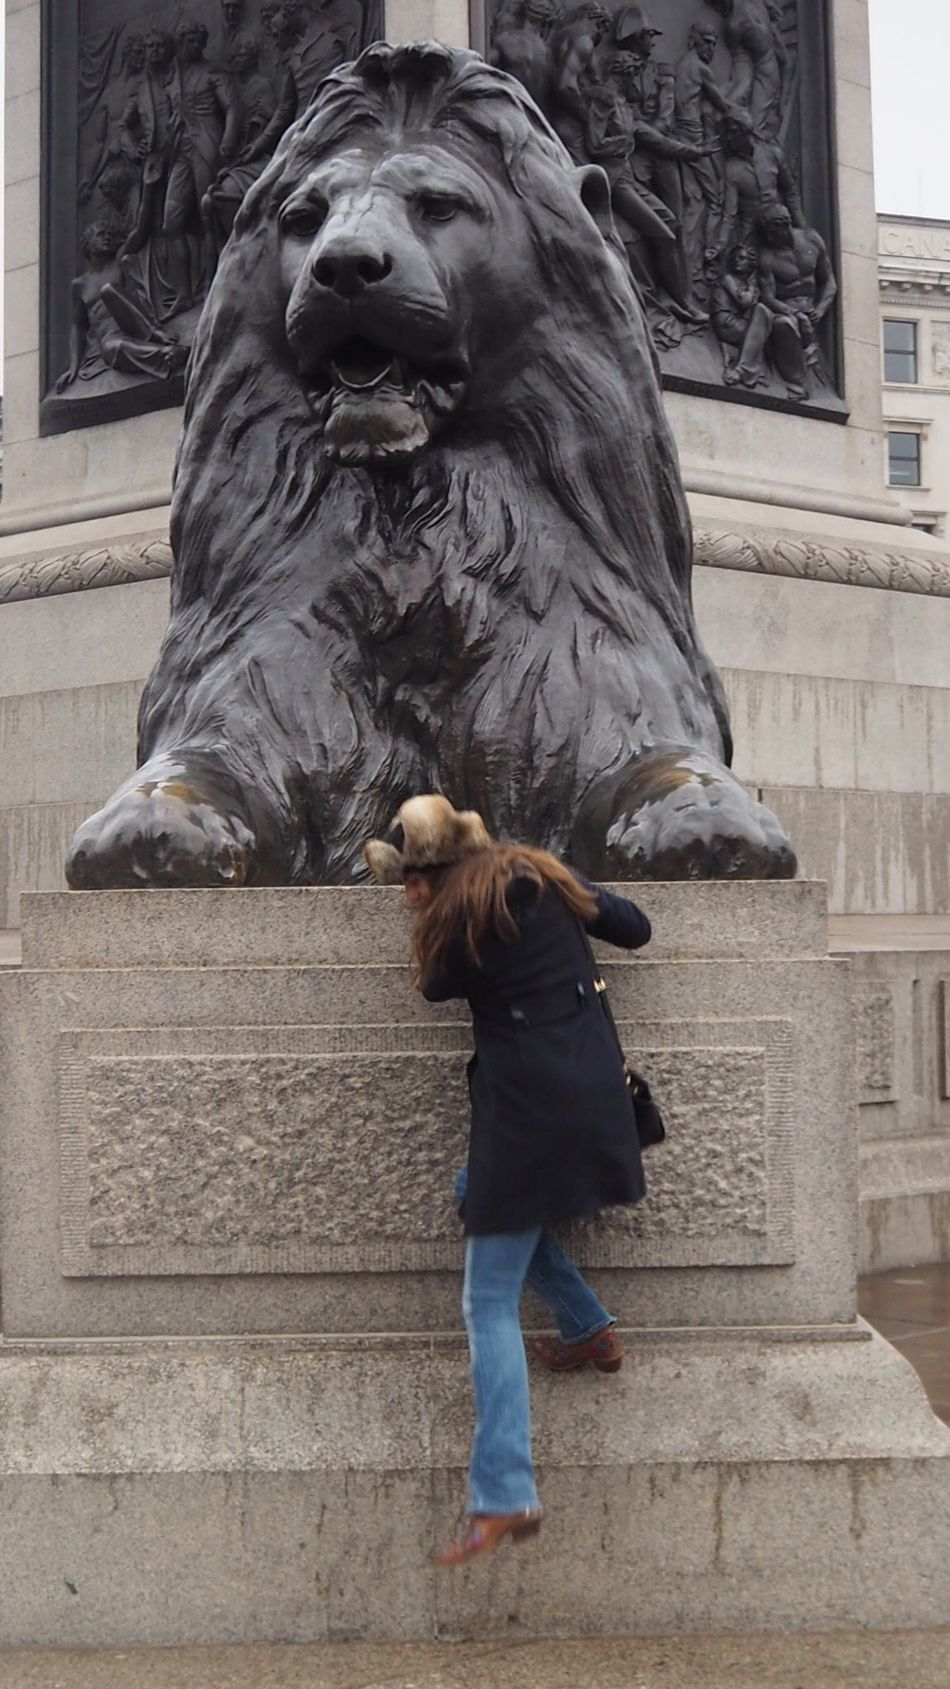 Adapted To The City Statue Lion - Feline The Purist (no Edit, No Filter) Getty Images TheMinimals (less Edit Juxt Photography) London Street Photography Shootermag